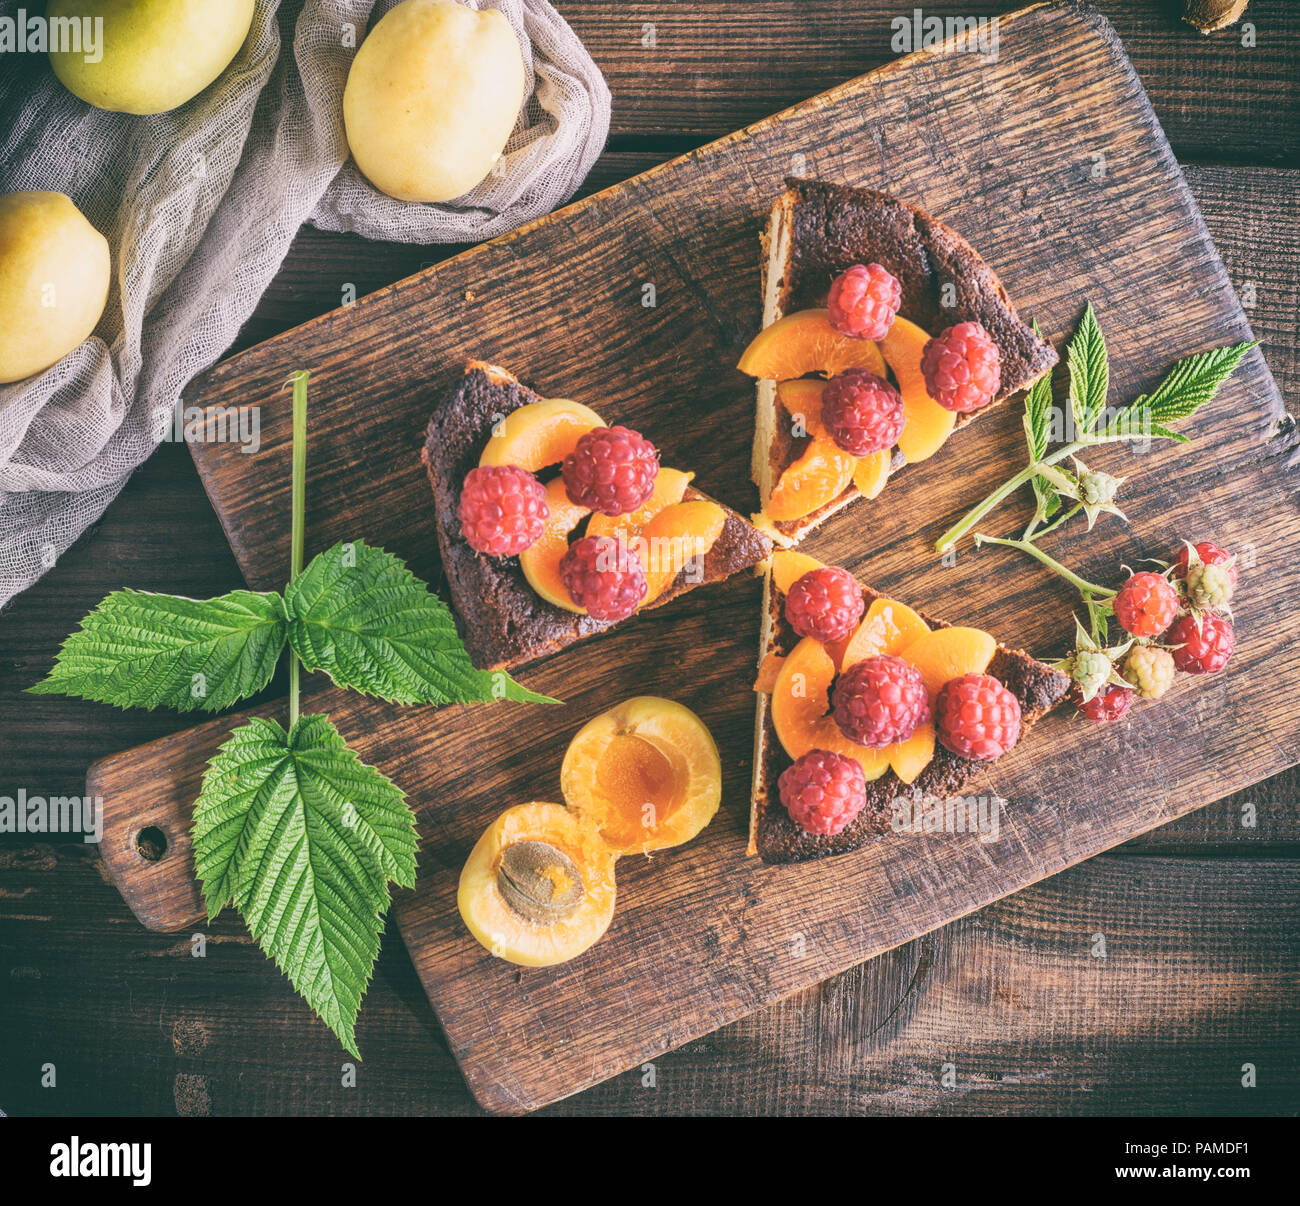 pieces of cottage cheese pie with strawberries and apricots on a brown wooden board, top view - Stock Image